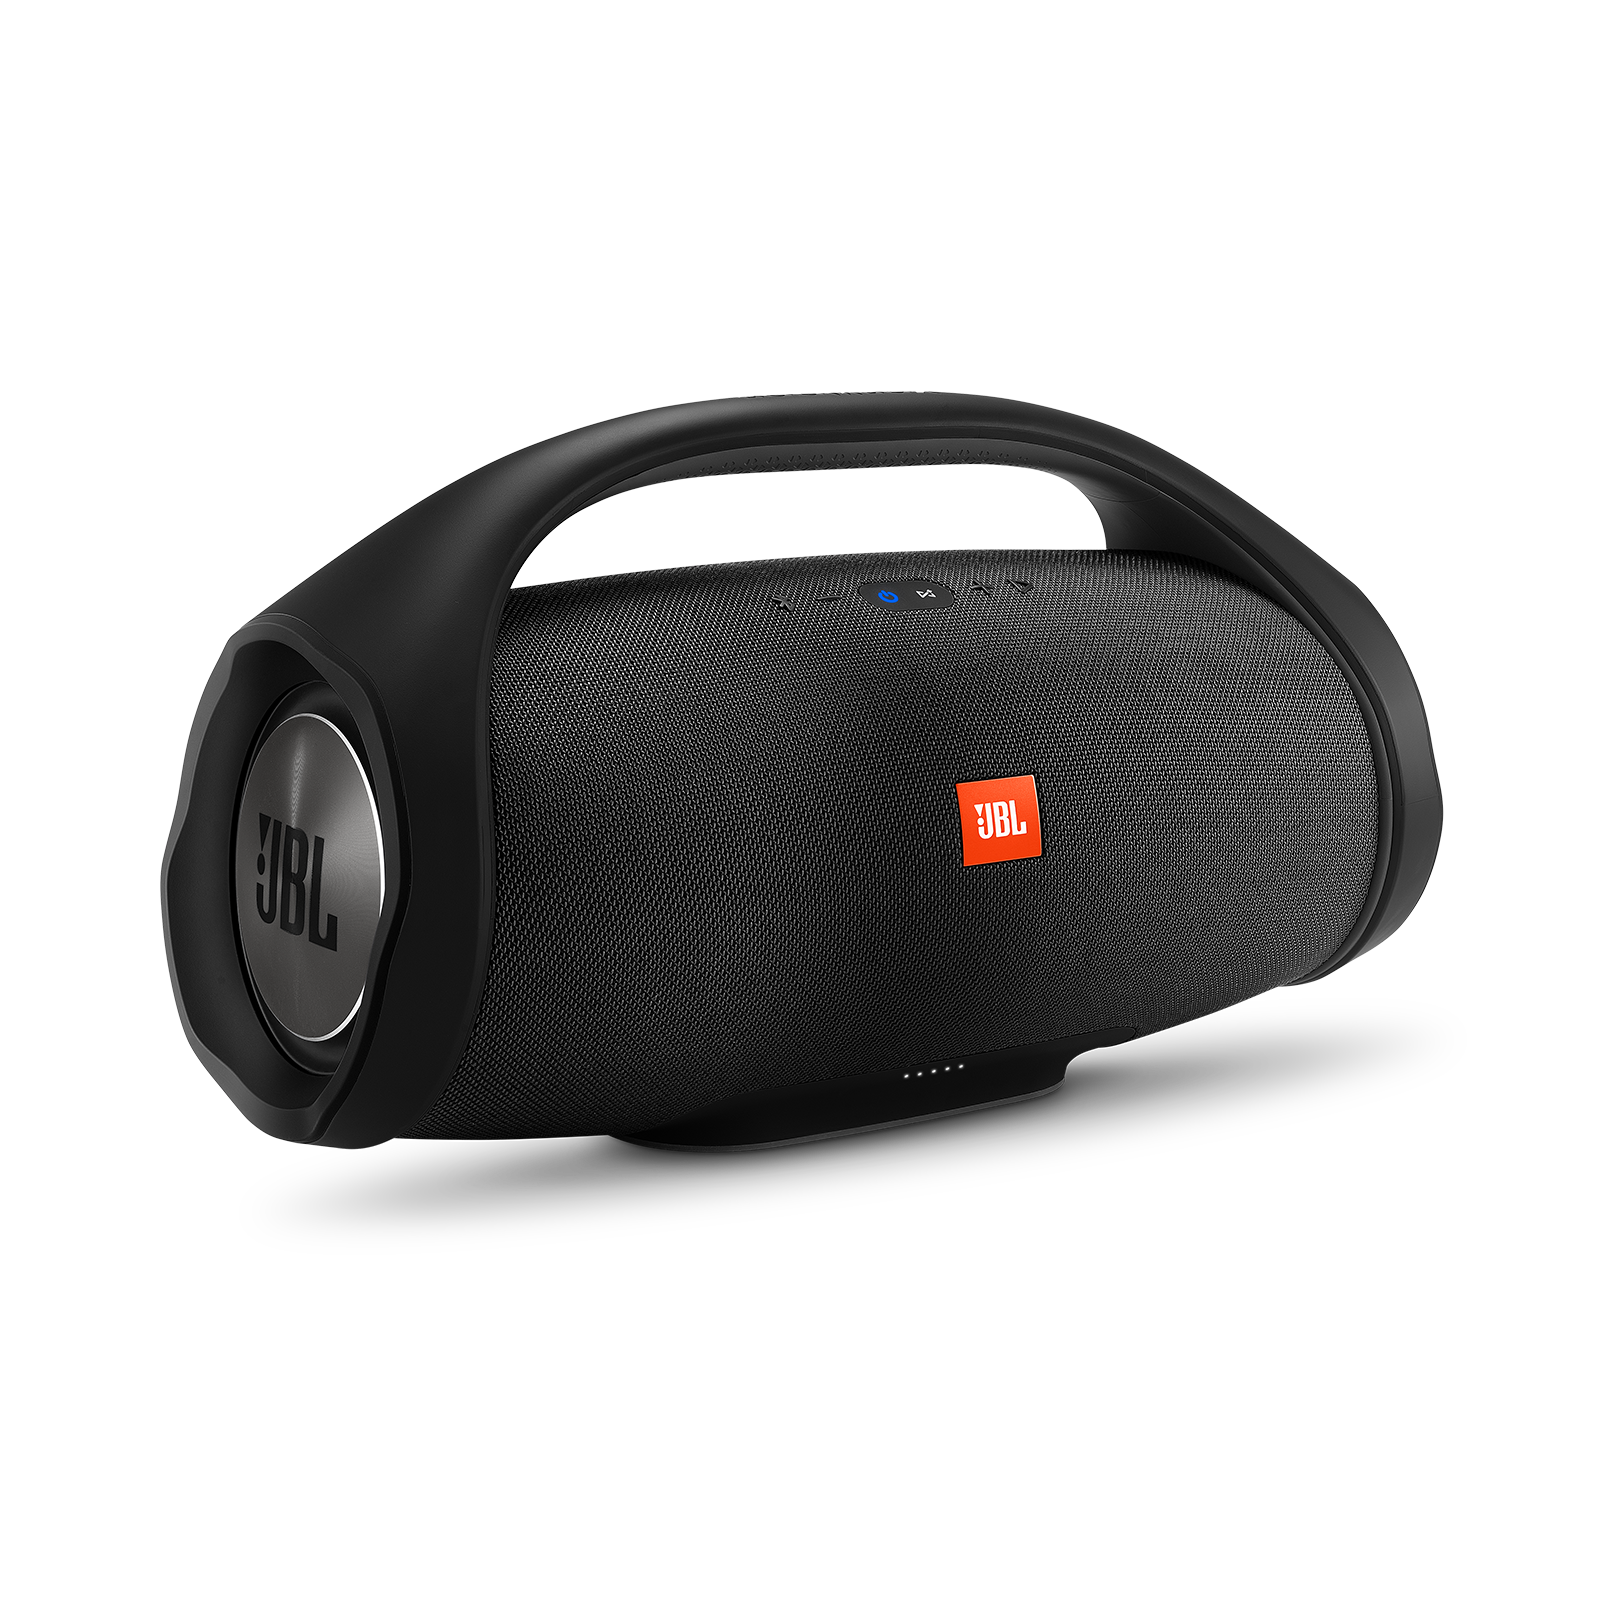 jbl boombox portable bluetooth speaker. Black Bedroom Furniture Sets. Home Design Ideas